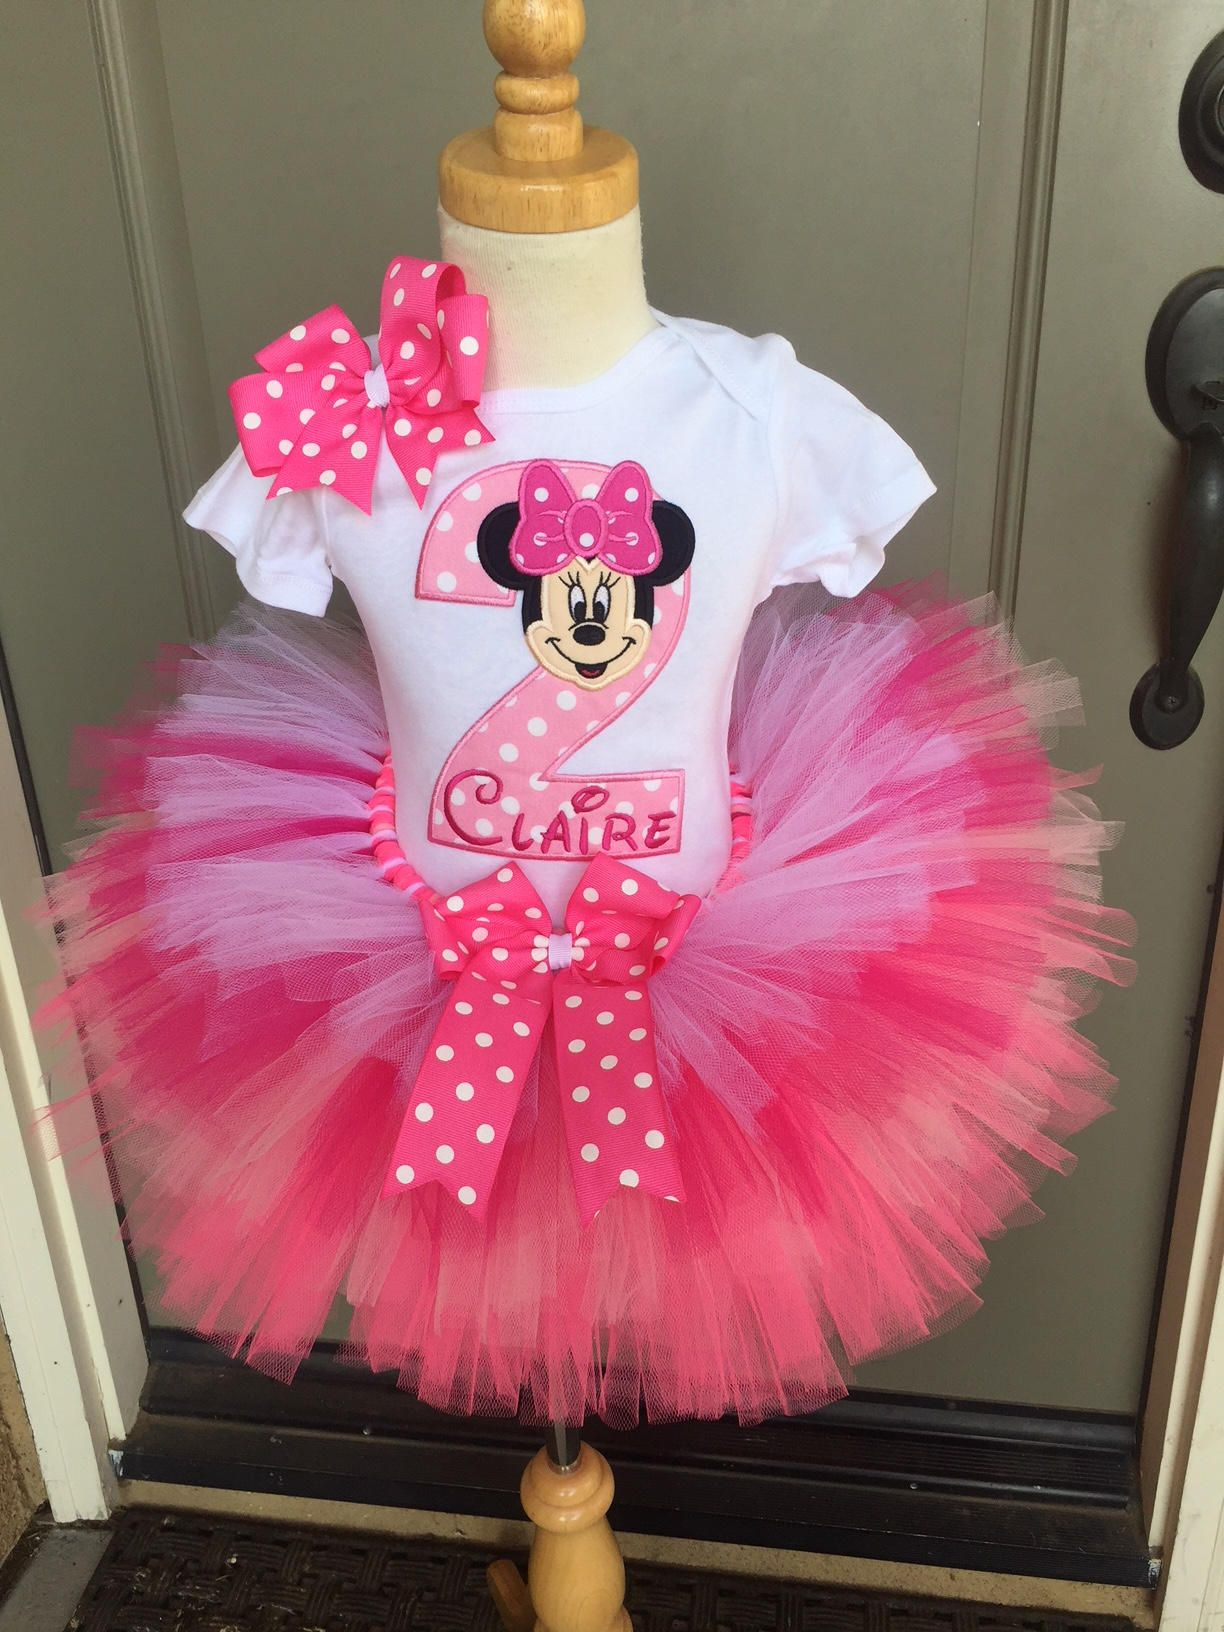 Minnie Mouse Birthday Tutu Outfit Dress Set Handmade 1st 2nd 3rd In Bright Pinks Minnie Mouse Birthday Dress Minnie Mouse Birthday Outfit Birthday Tutu Outfit